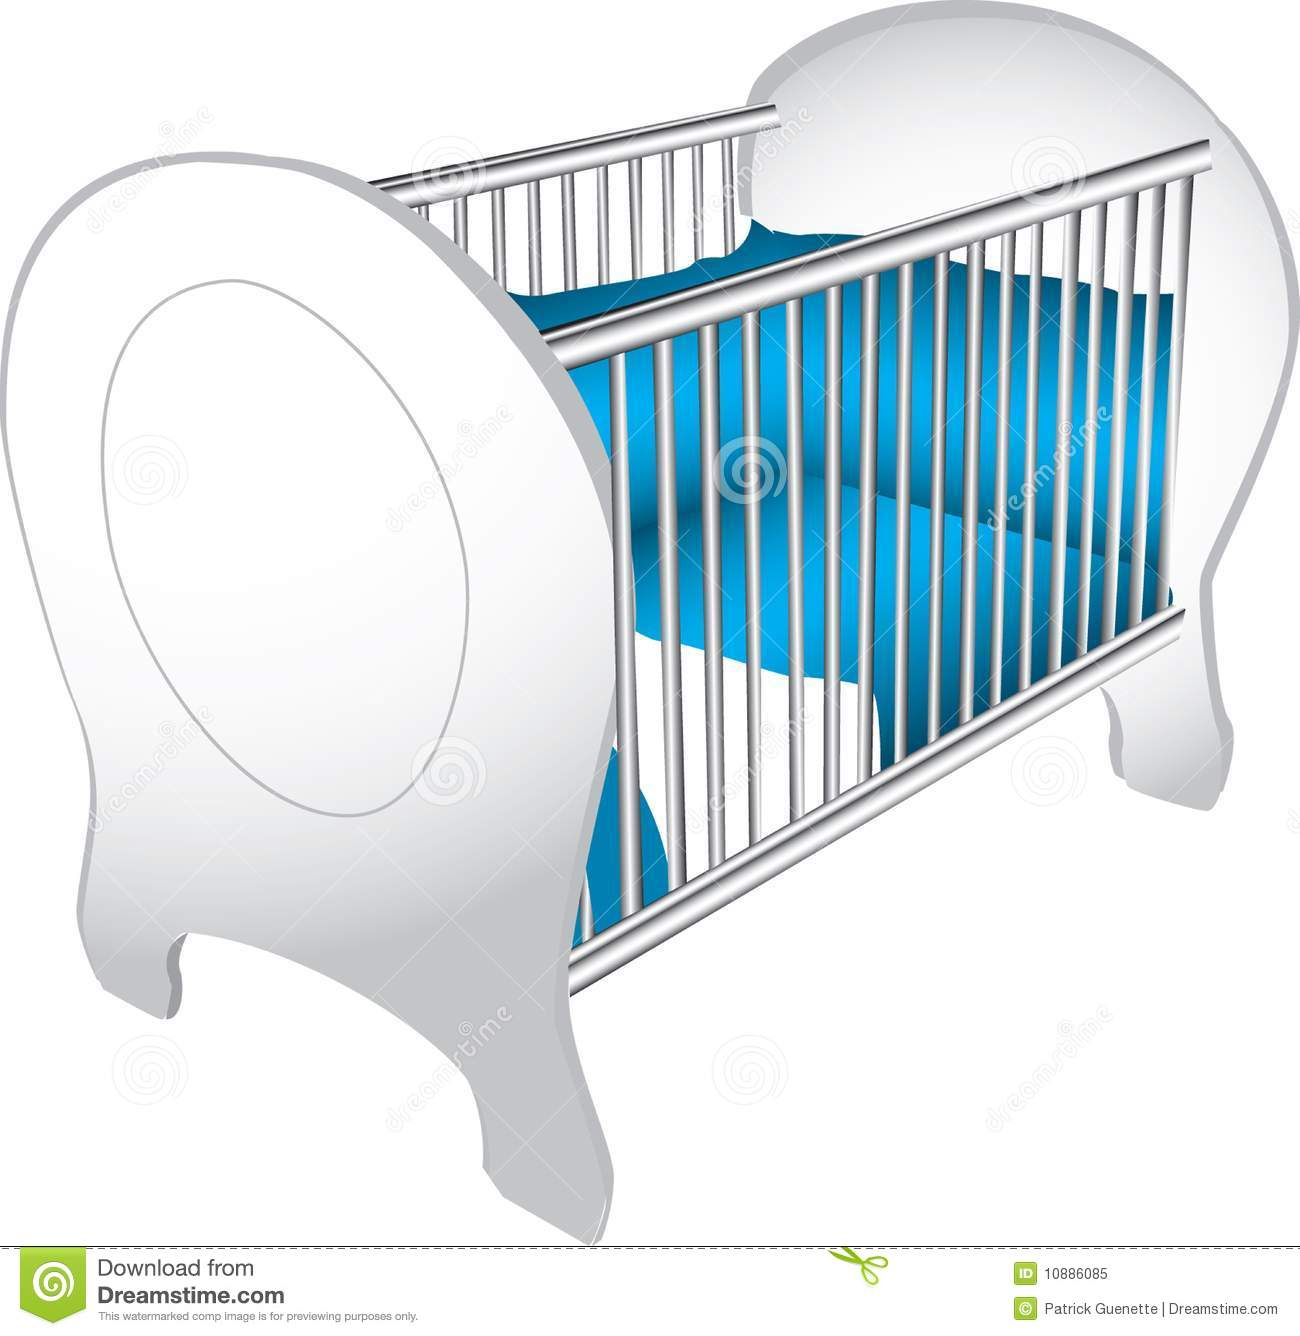 Sleeping Baby In Crib Clip Art Baby crib illustration